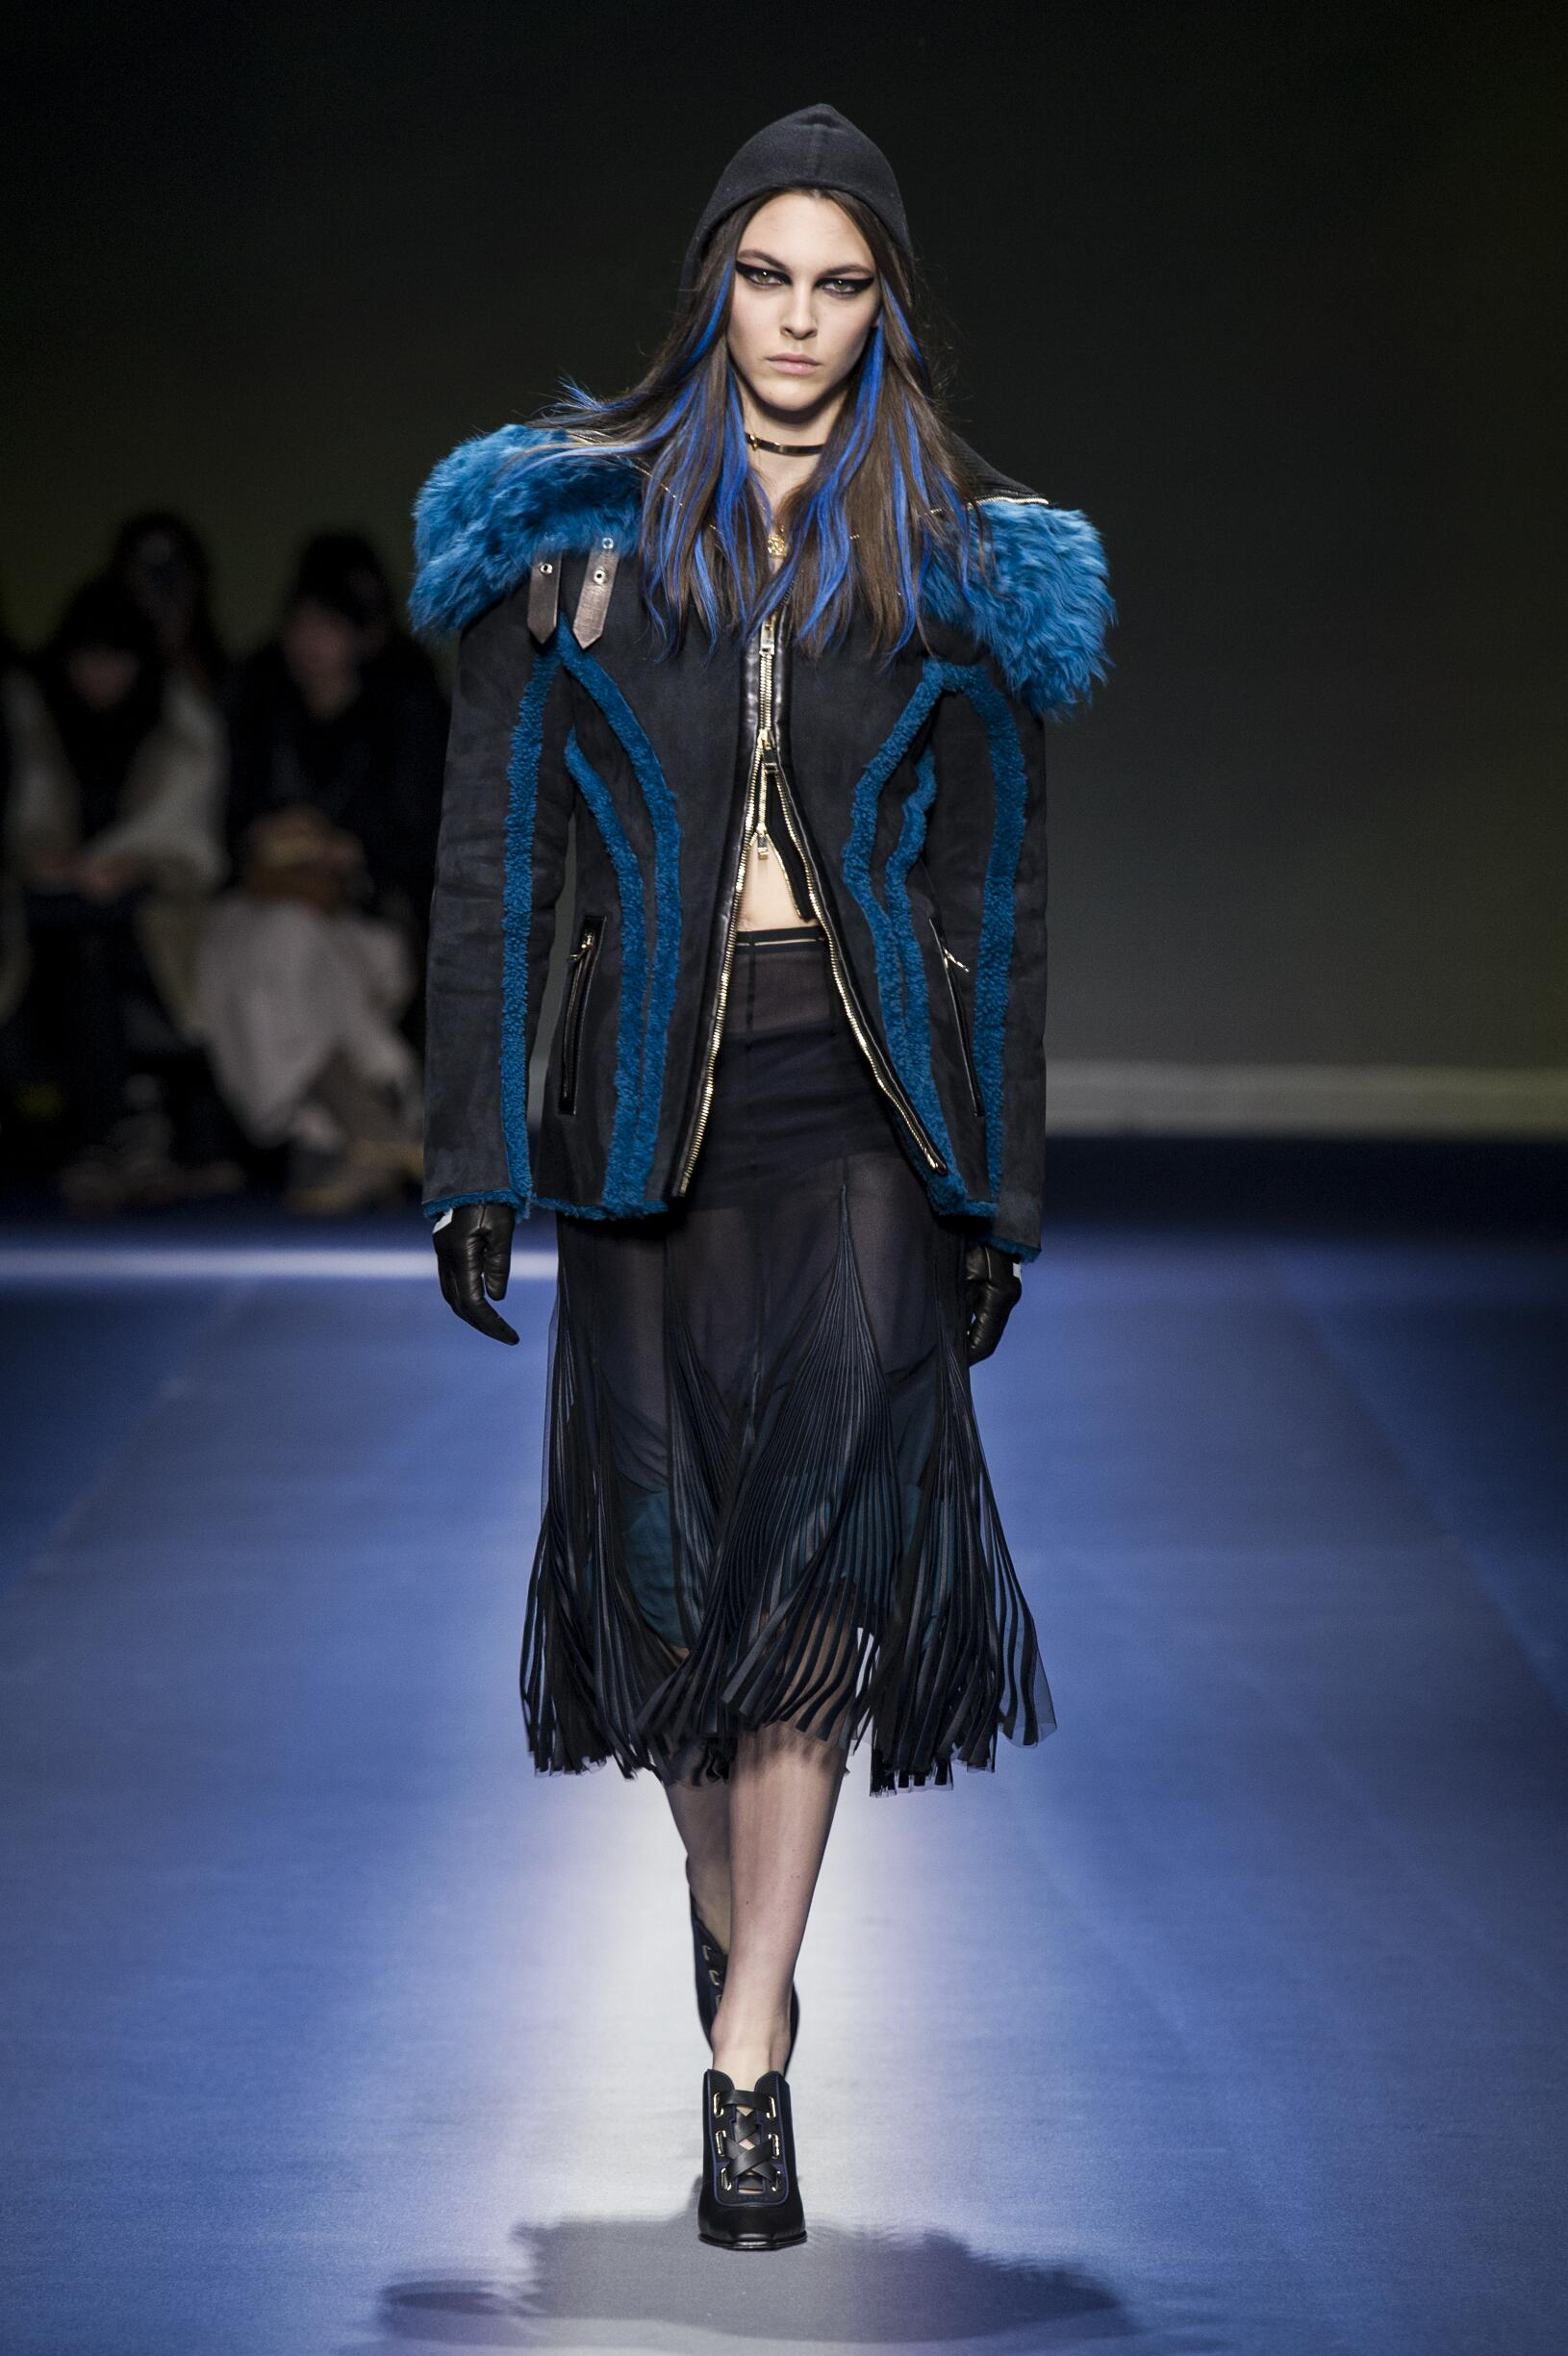 bec72bb2 VERSACE FALL WINTER 2017-18 WOMEN'S COLLECTION | The Skinny Beep